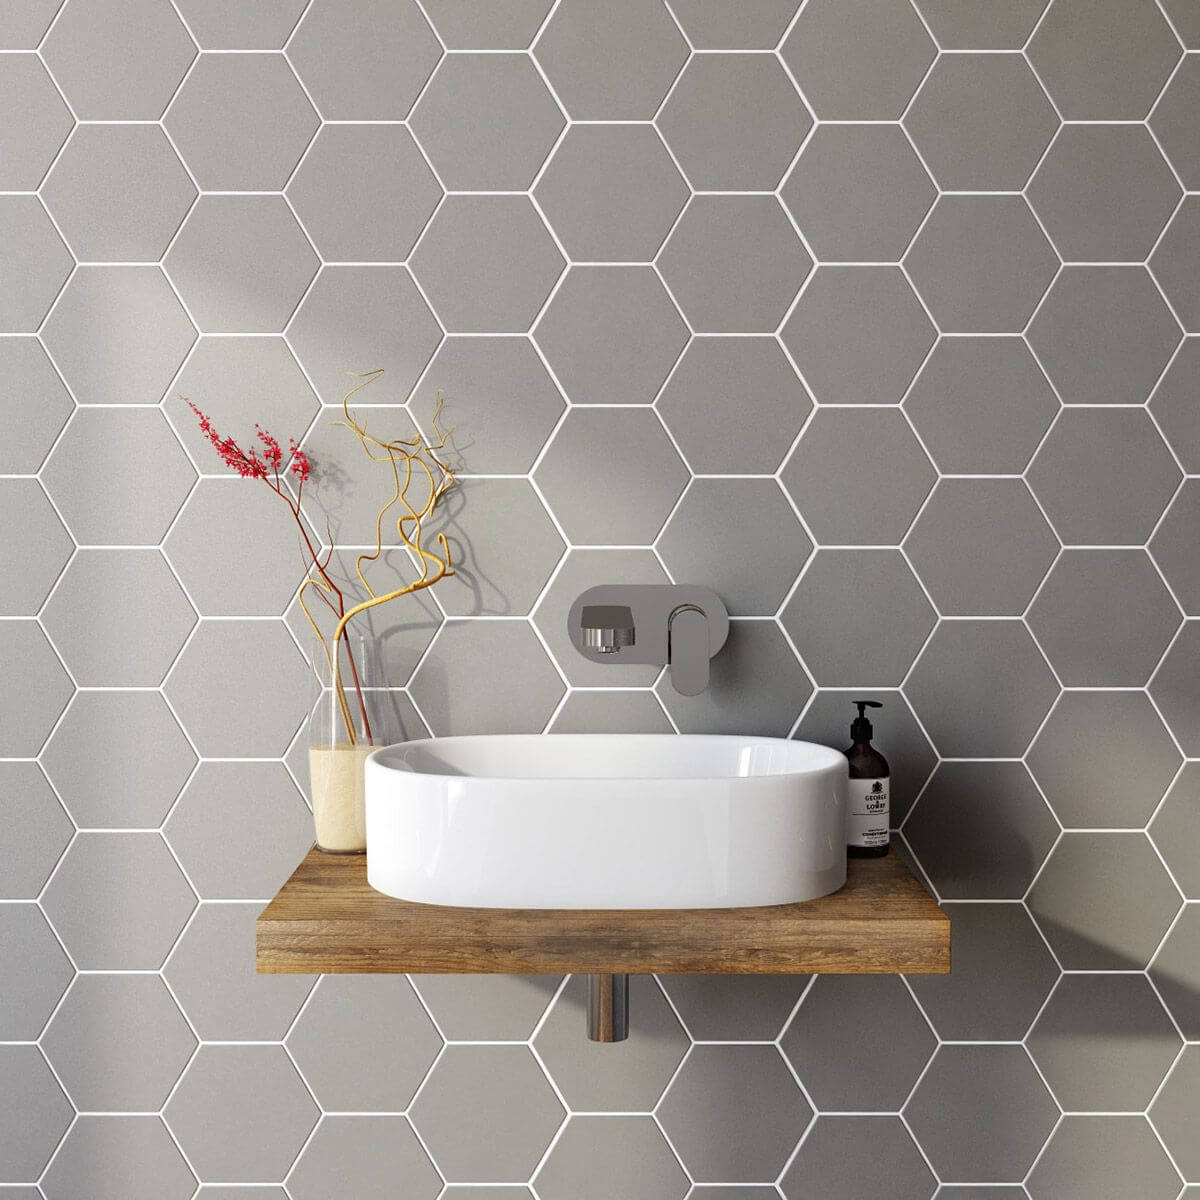 16 Vibrant Bathroom Tile Ideas You Need To Try Innovative Decor